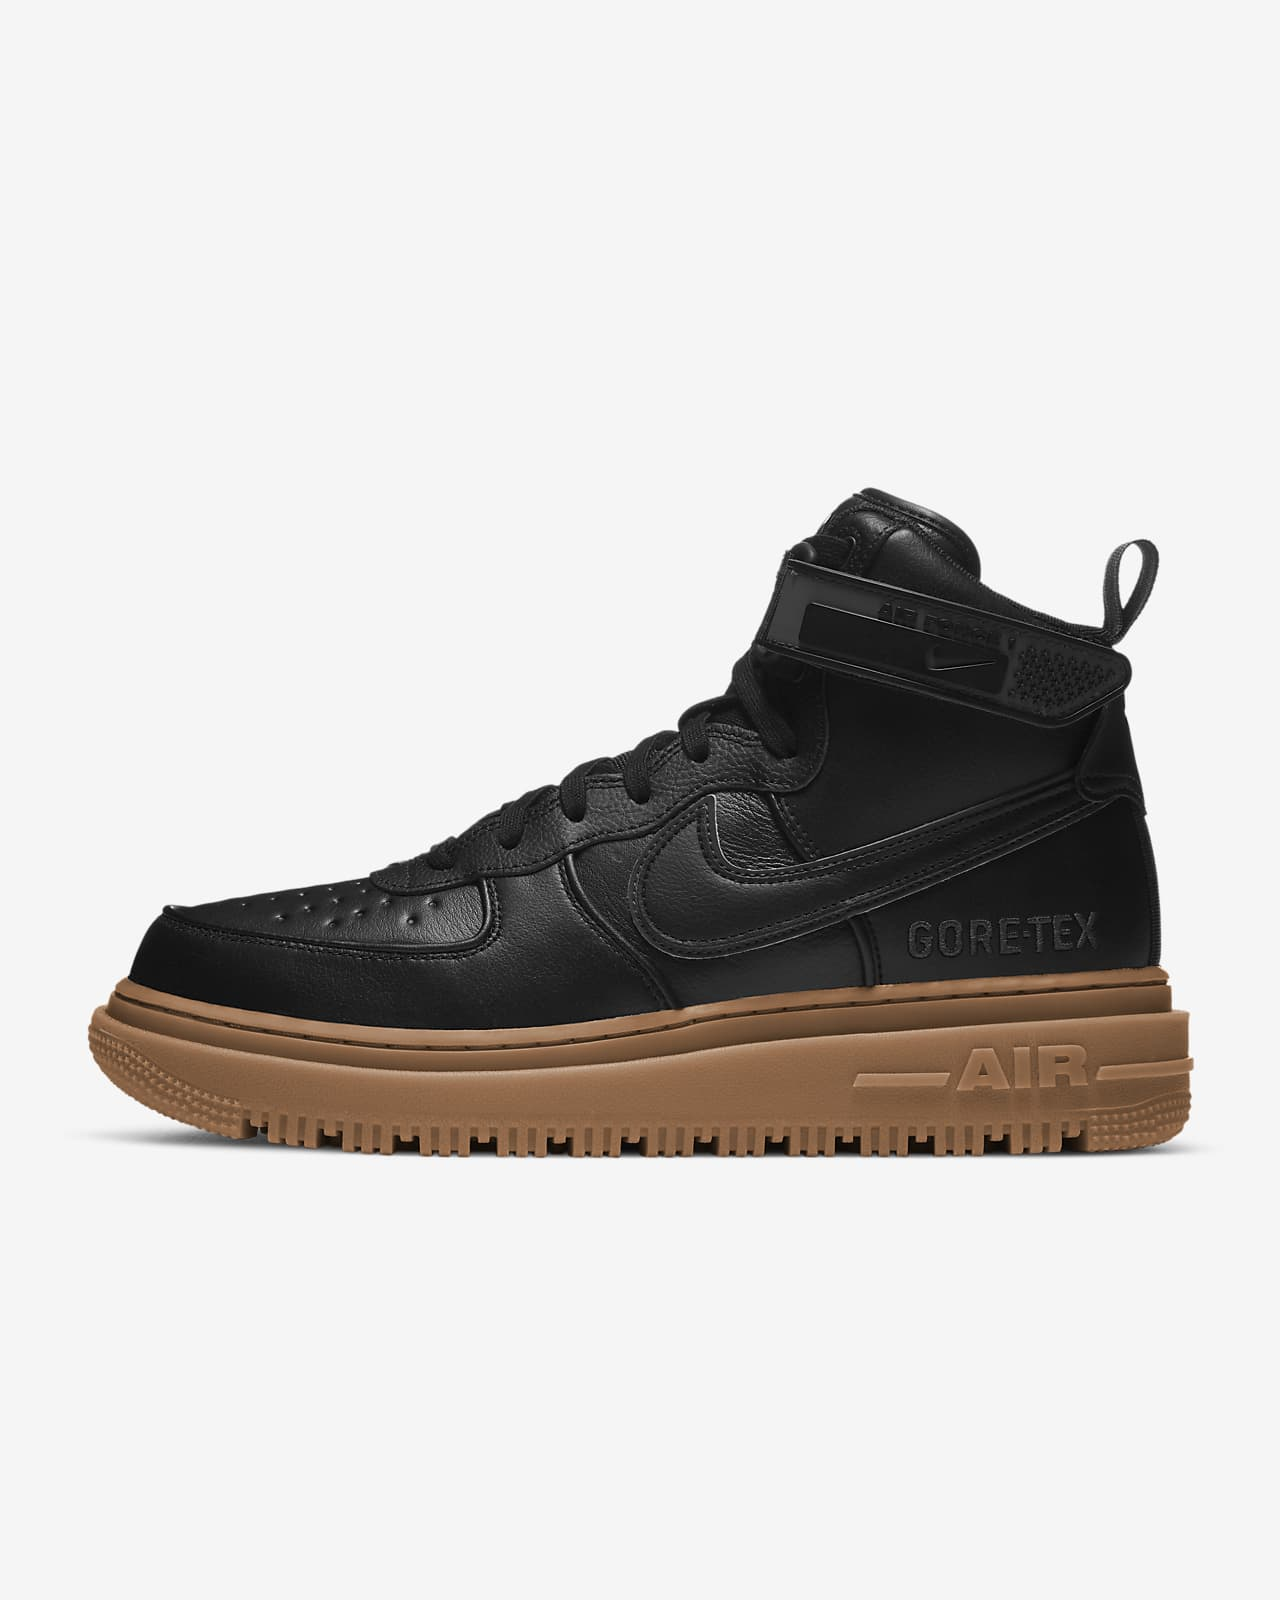 Nike Air Force 1 GTX Boot Boot